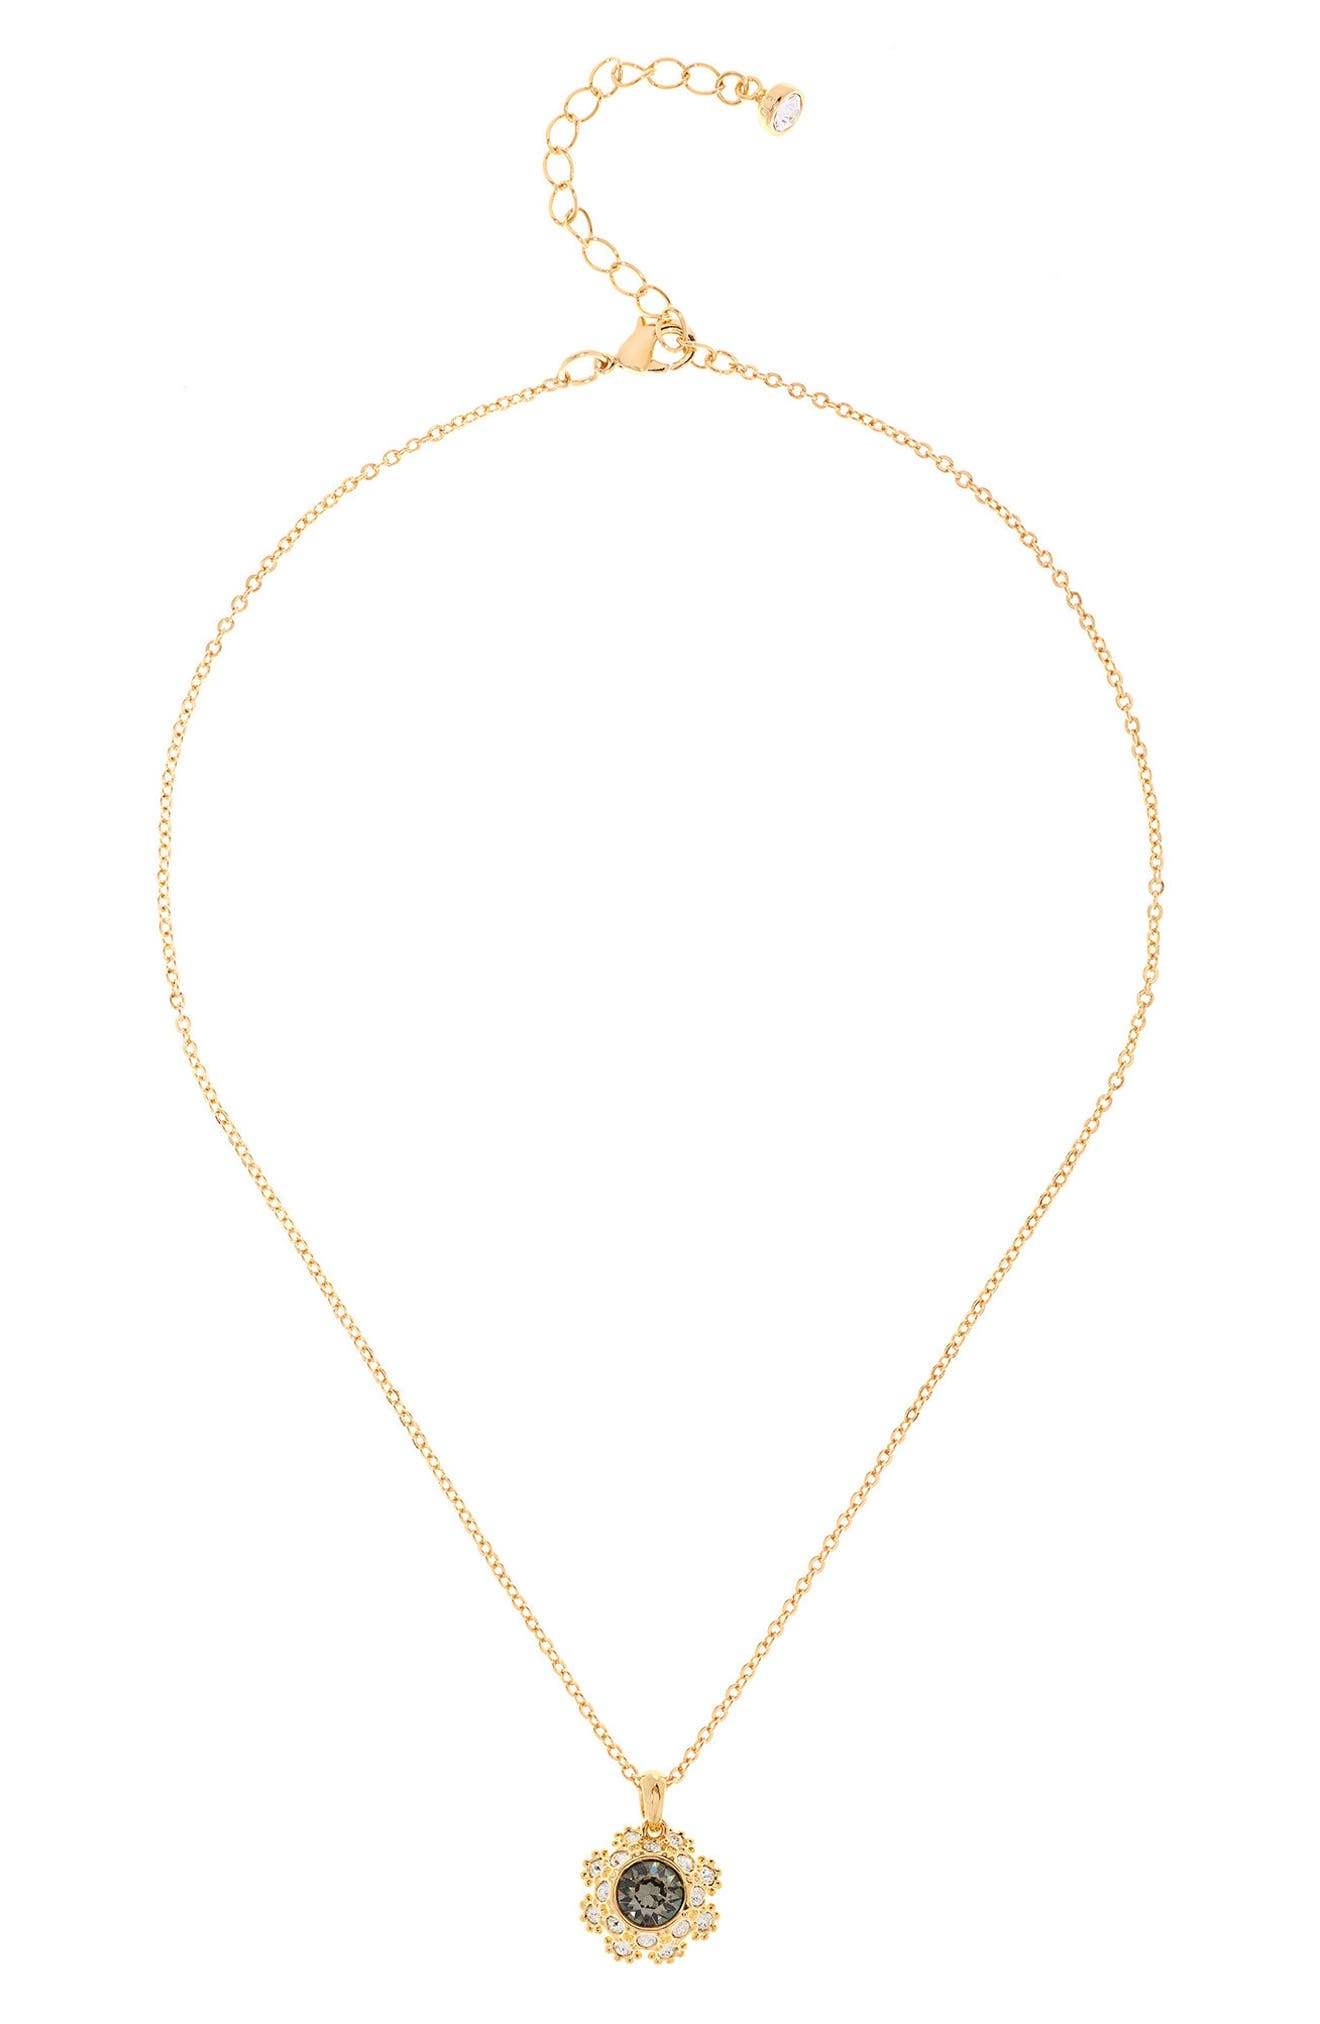 Main Image - Ted Baker London Crystal Daisy Lace Pendant Necklace